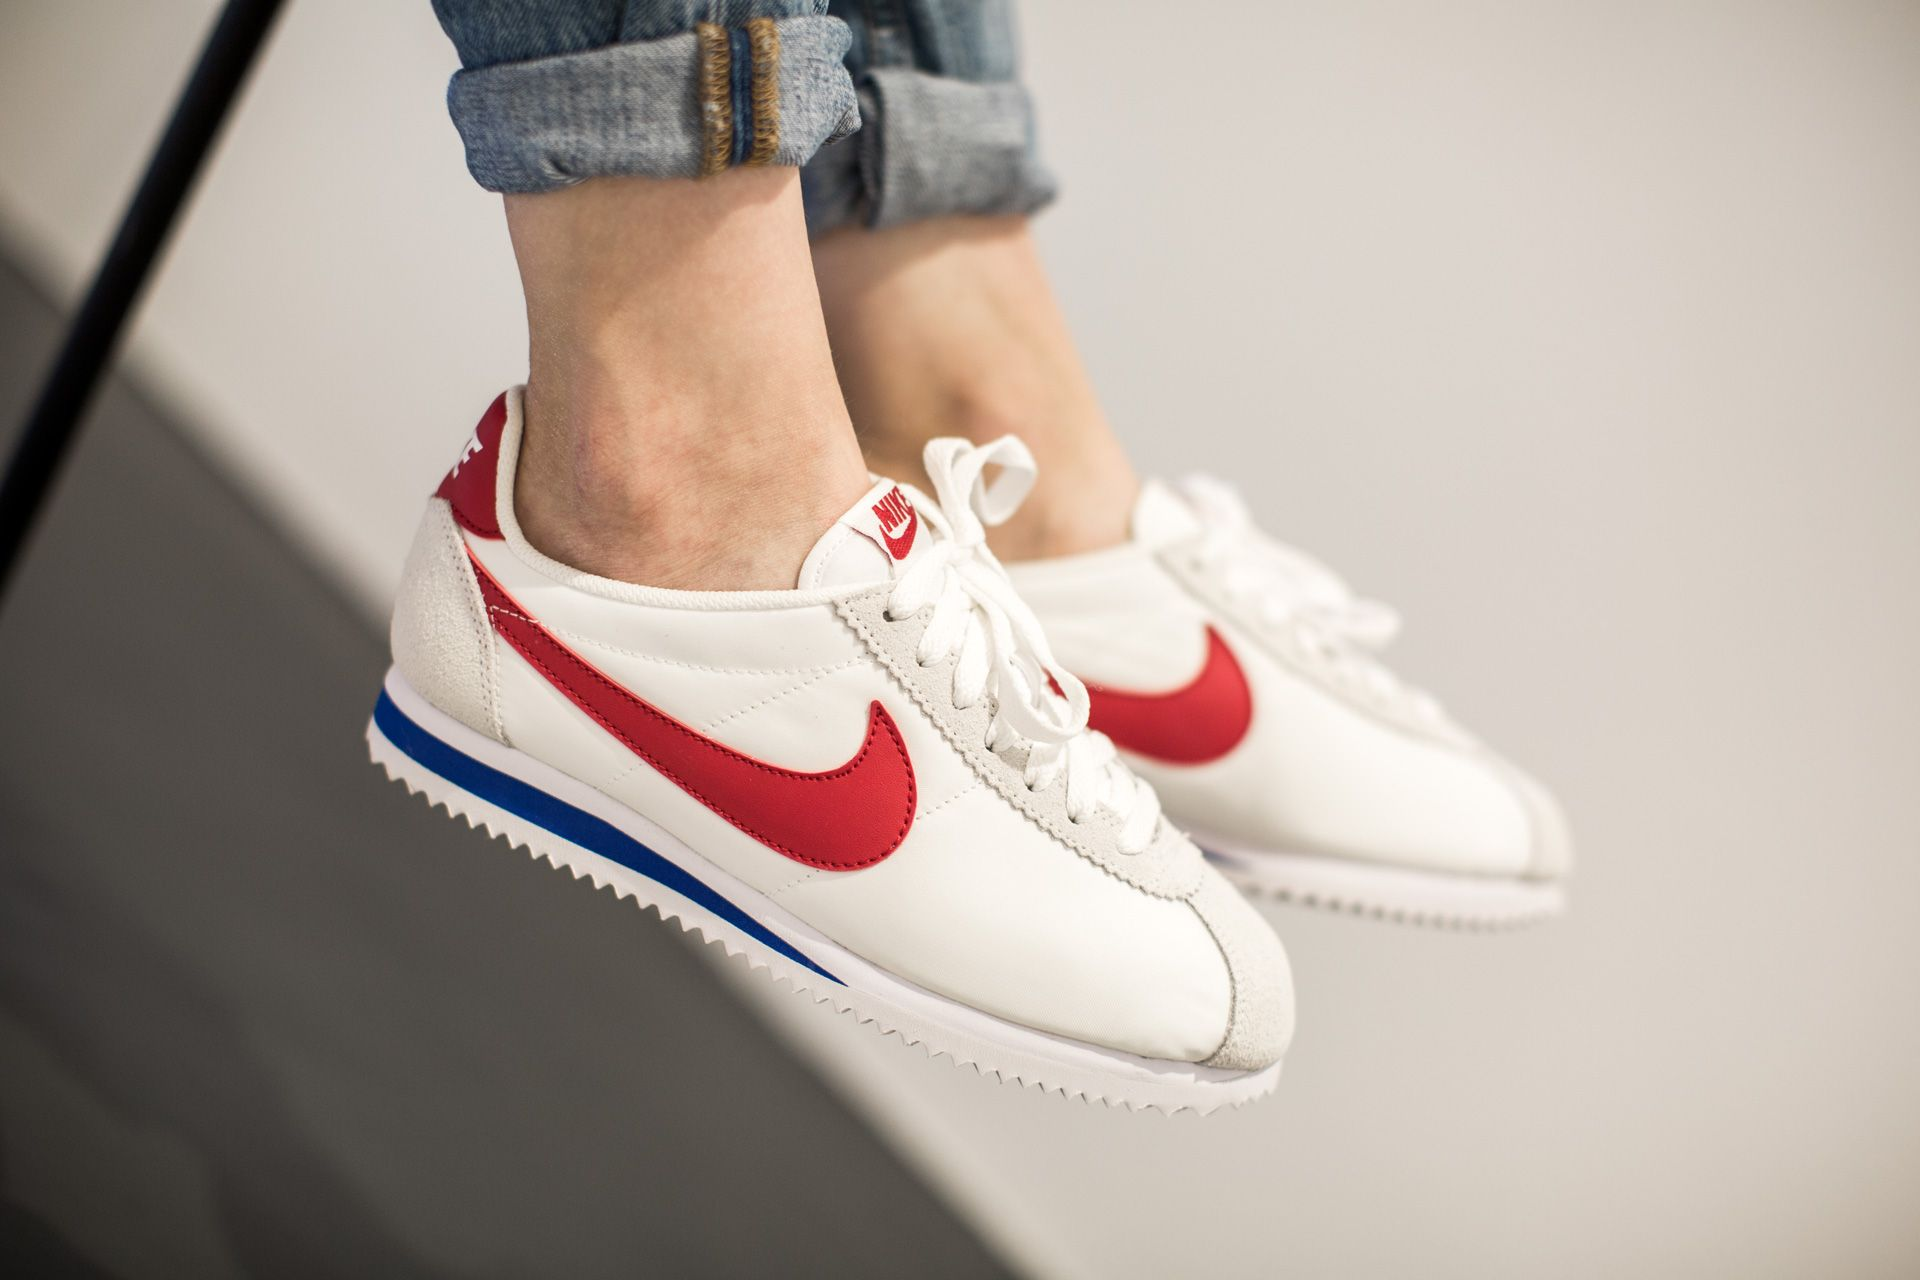 nike classic cortez nylon white varsity red vrsty royal available at tint